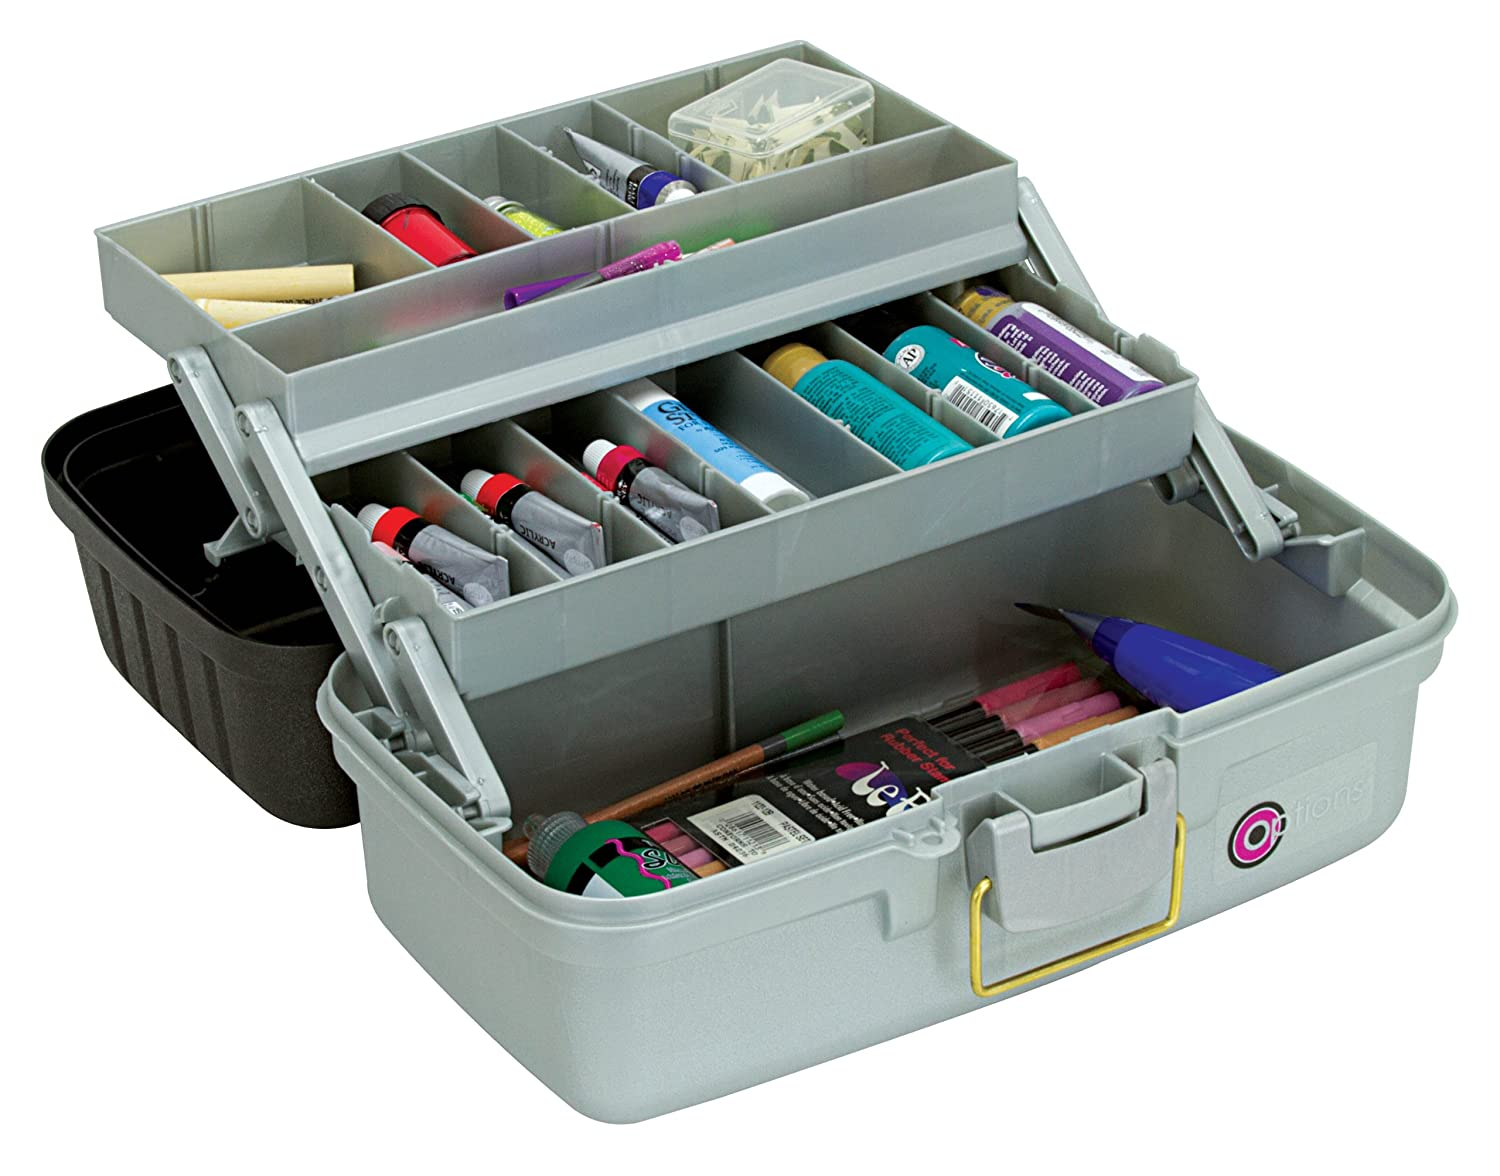 Creative Options 6202-77 Fine Arts 2-Tray Art Box with Auto Open Trays